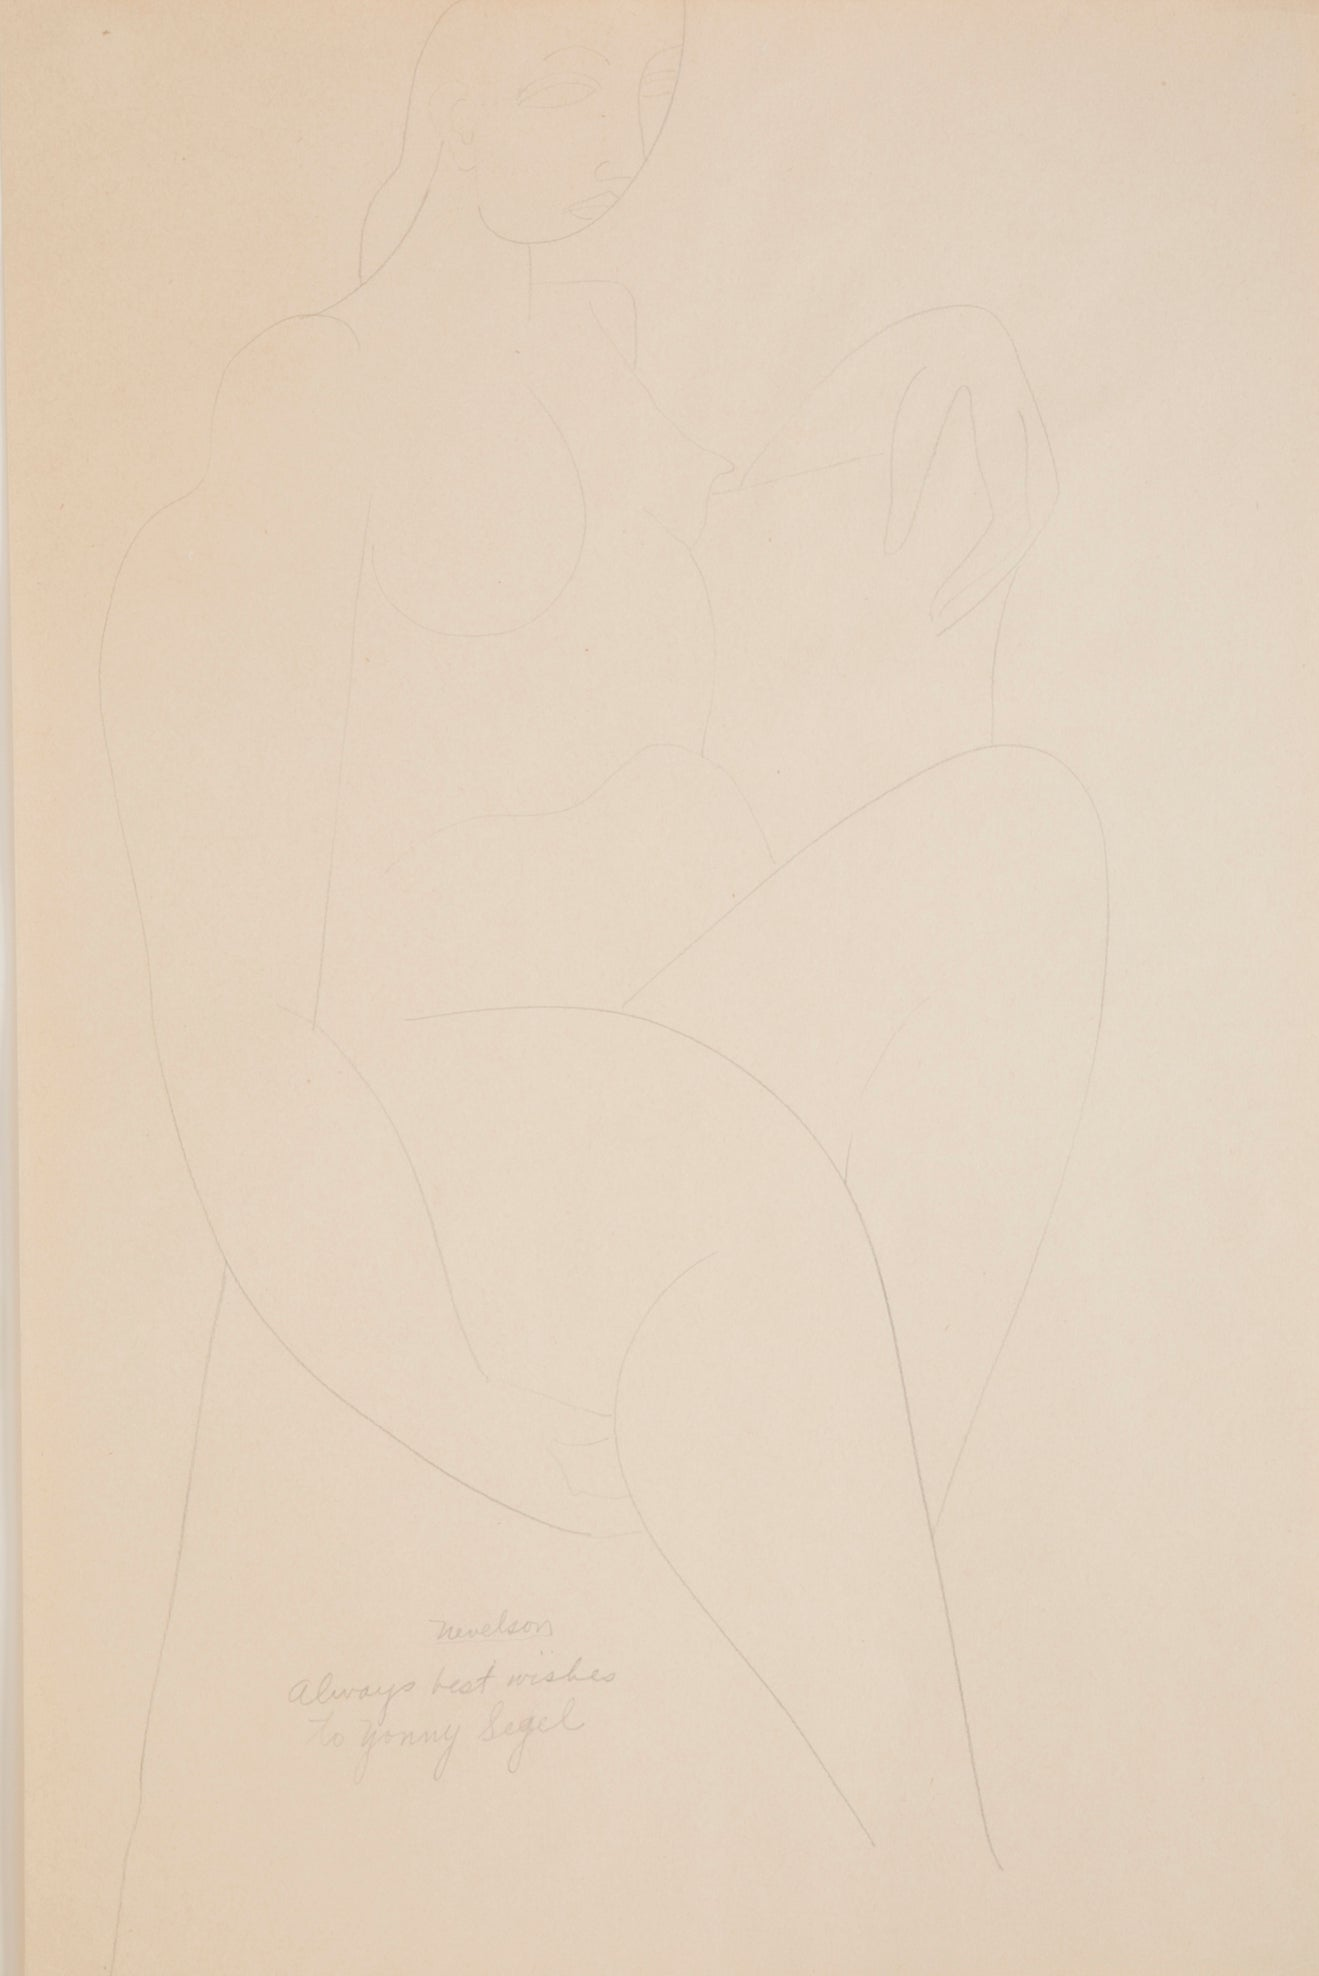 A Pencil Drawing by Louise Nevelson.